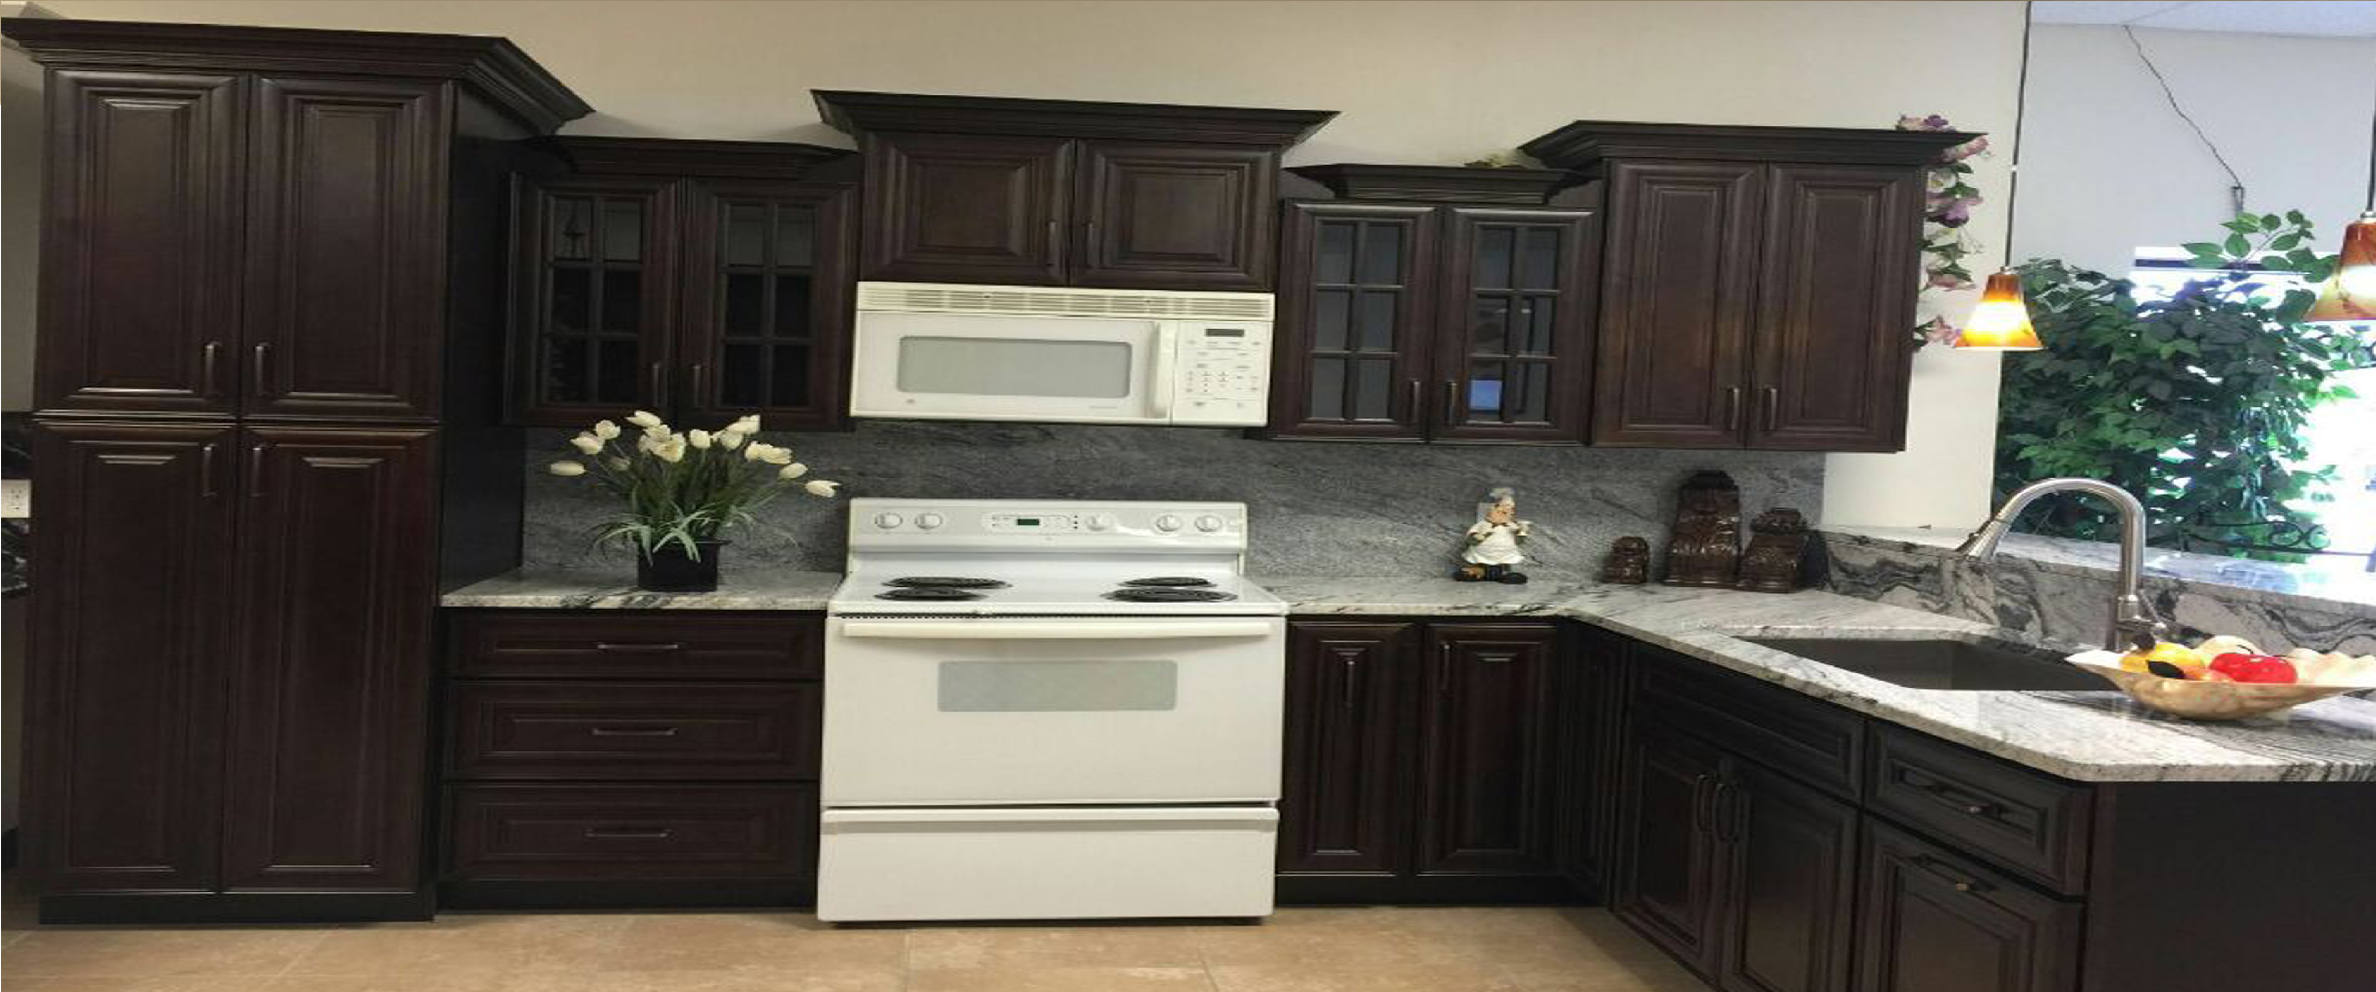 a1cng kitchen remodeling lincoln ne Espresso Maple